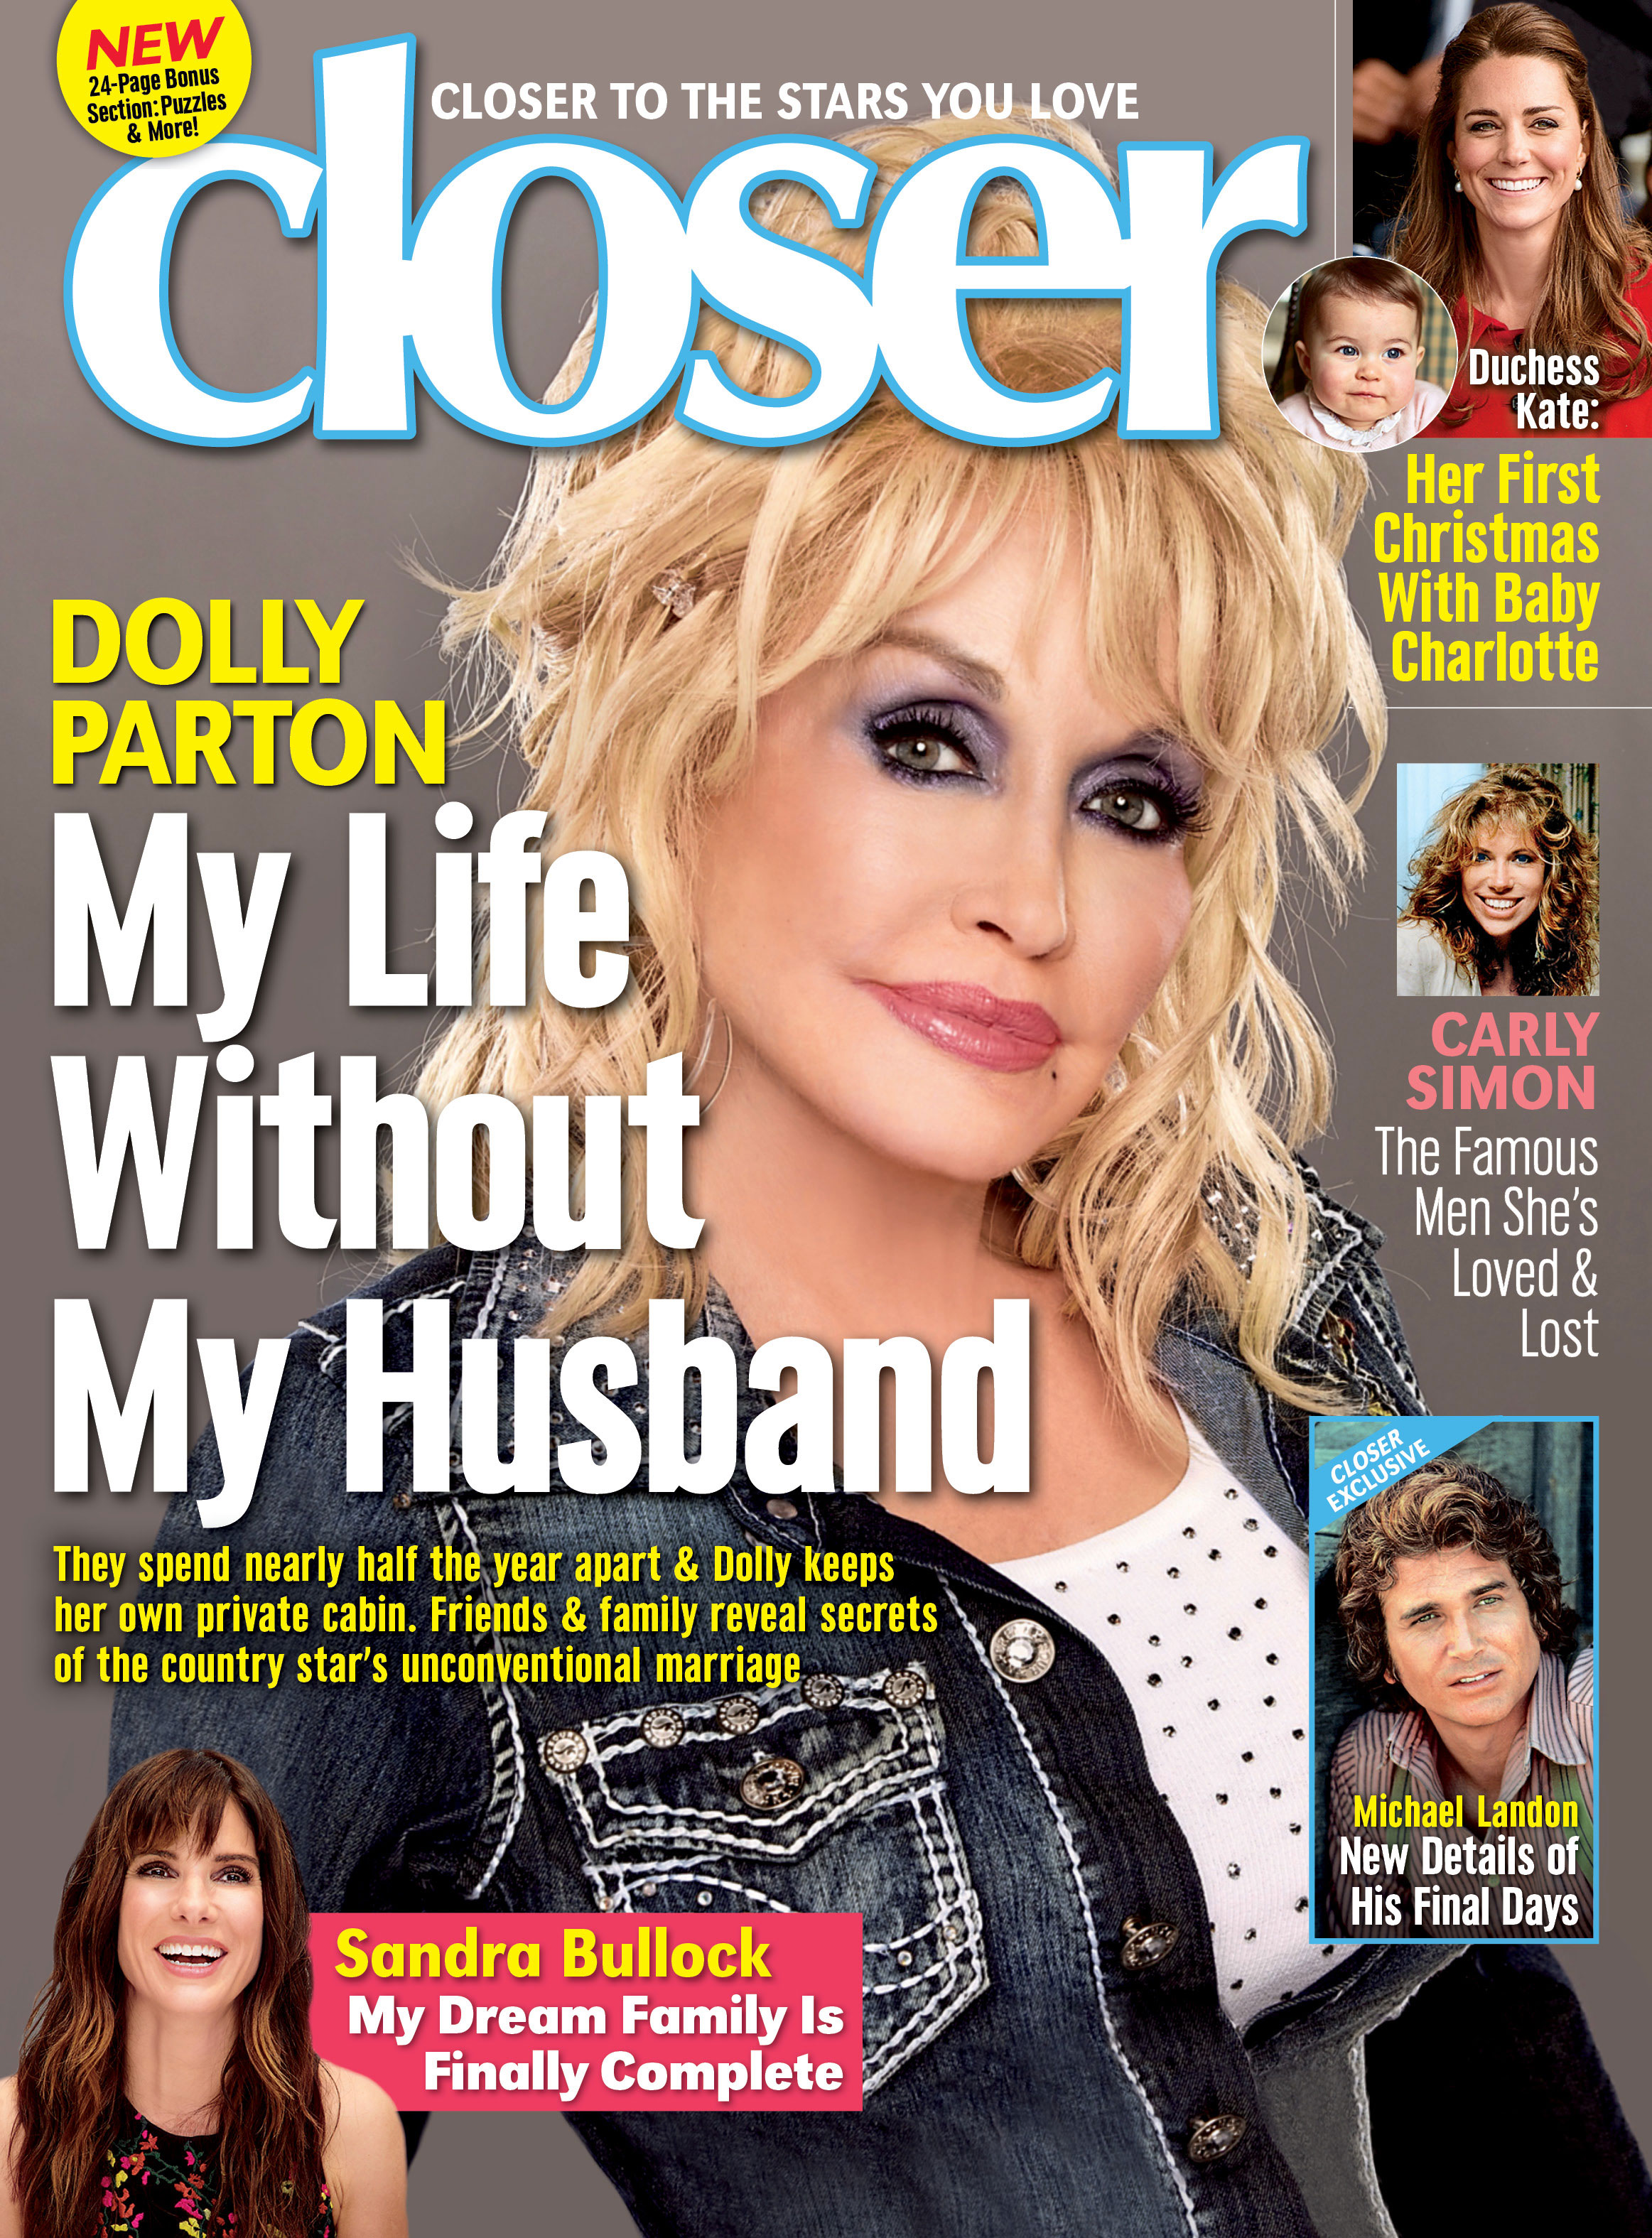 26cb42552de6e EXCLUSIVEDolly Parton Reveals the Secret to Her Unconventional Marriage —  Spending Time Apart!